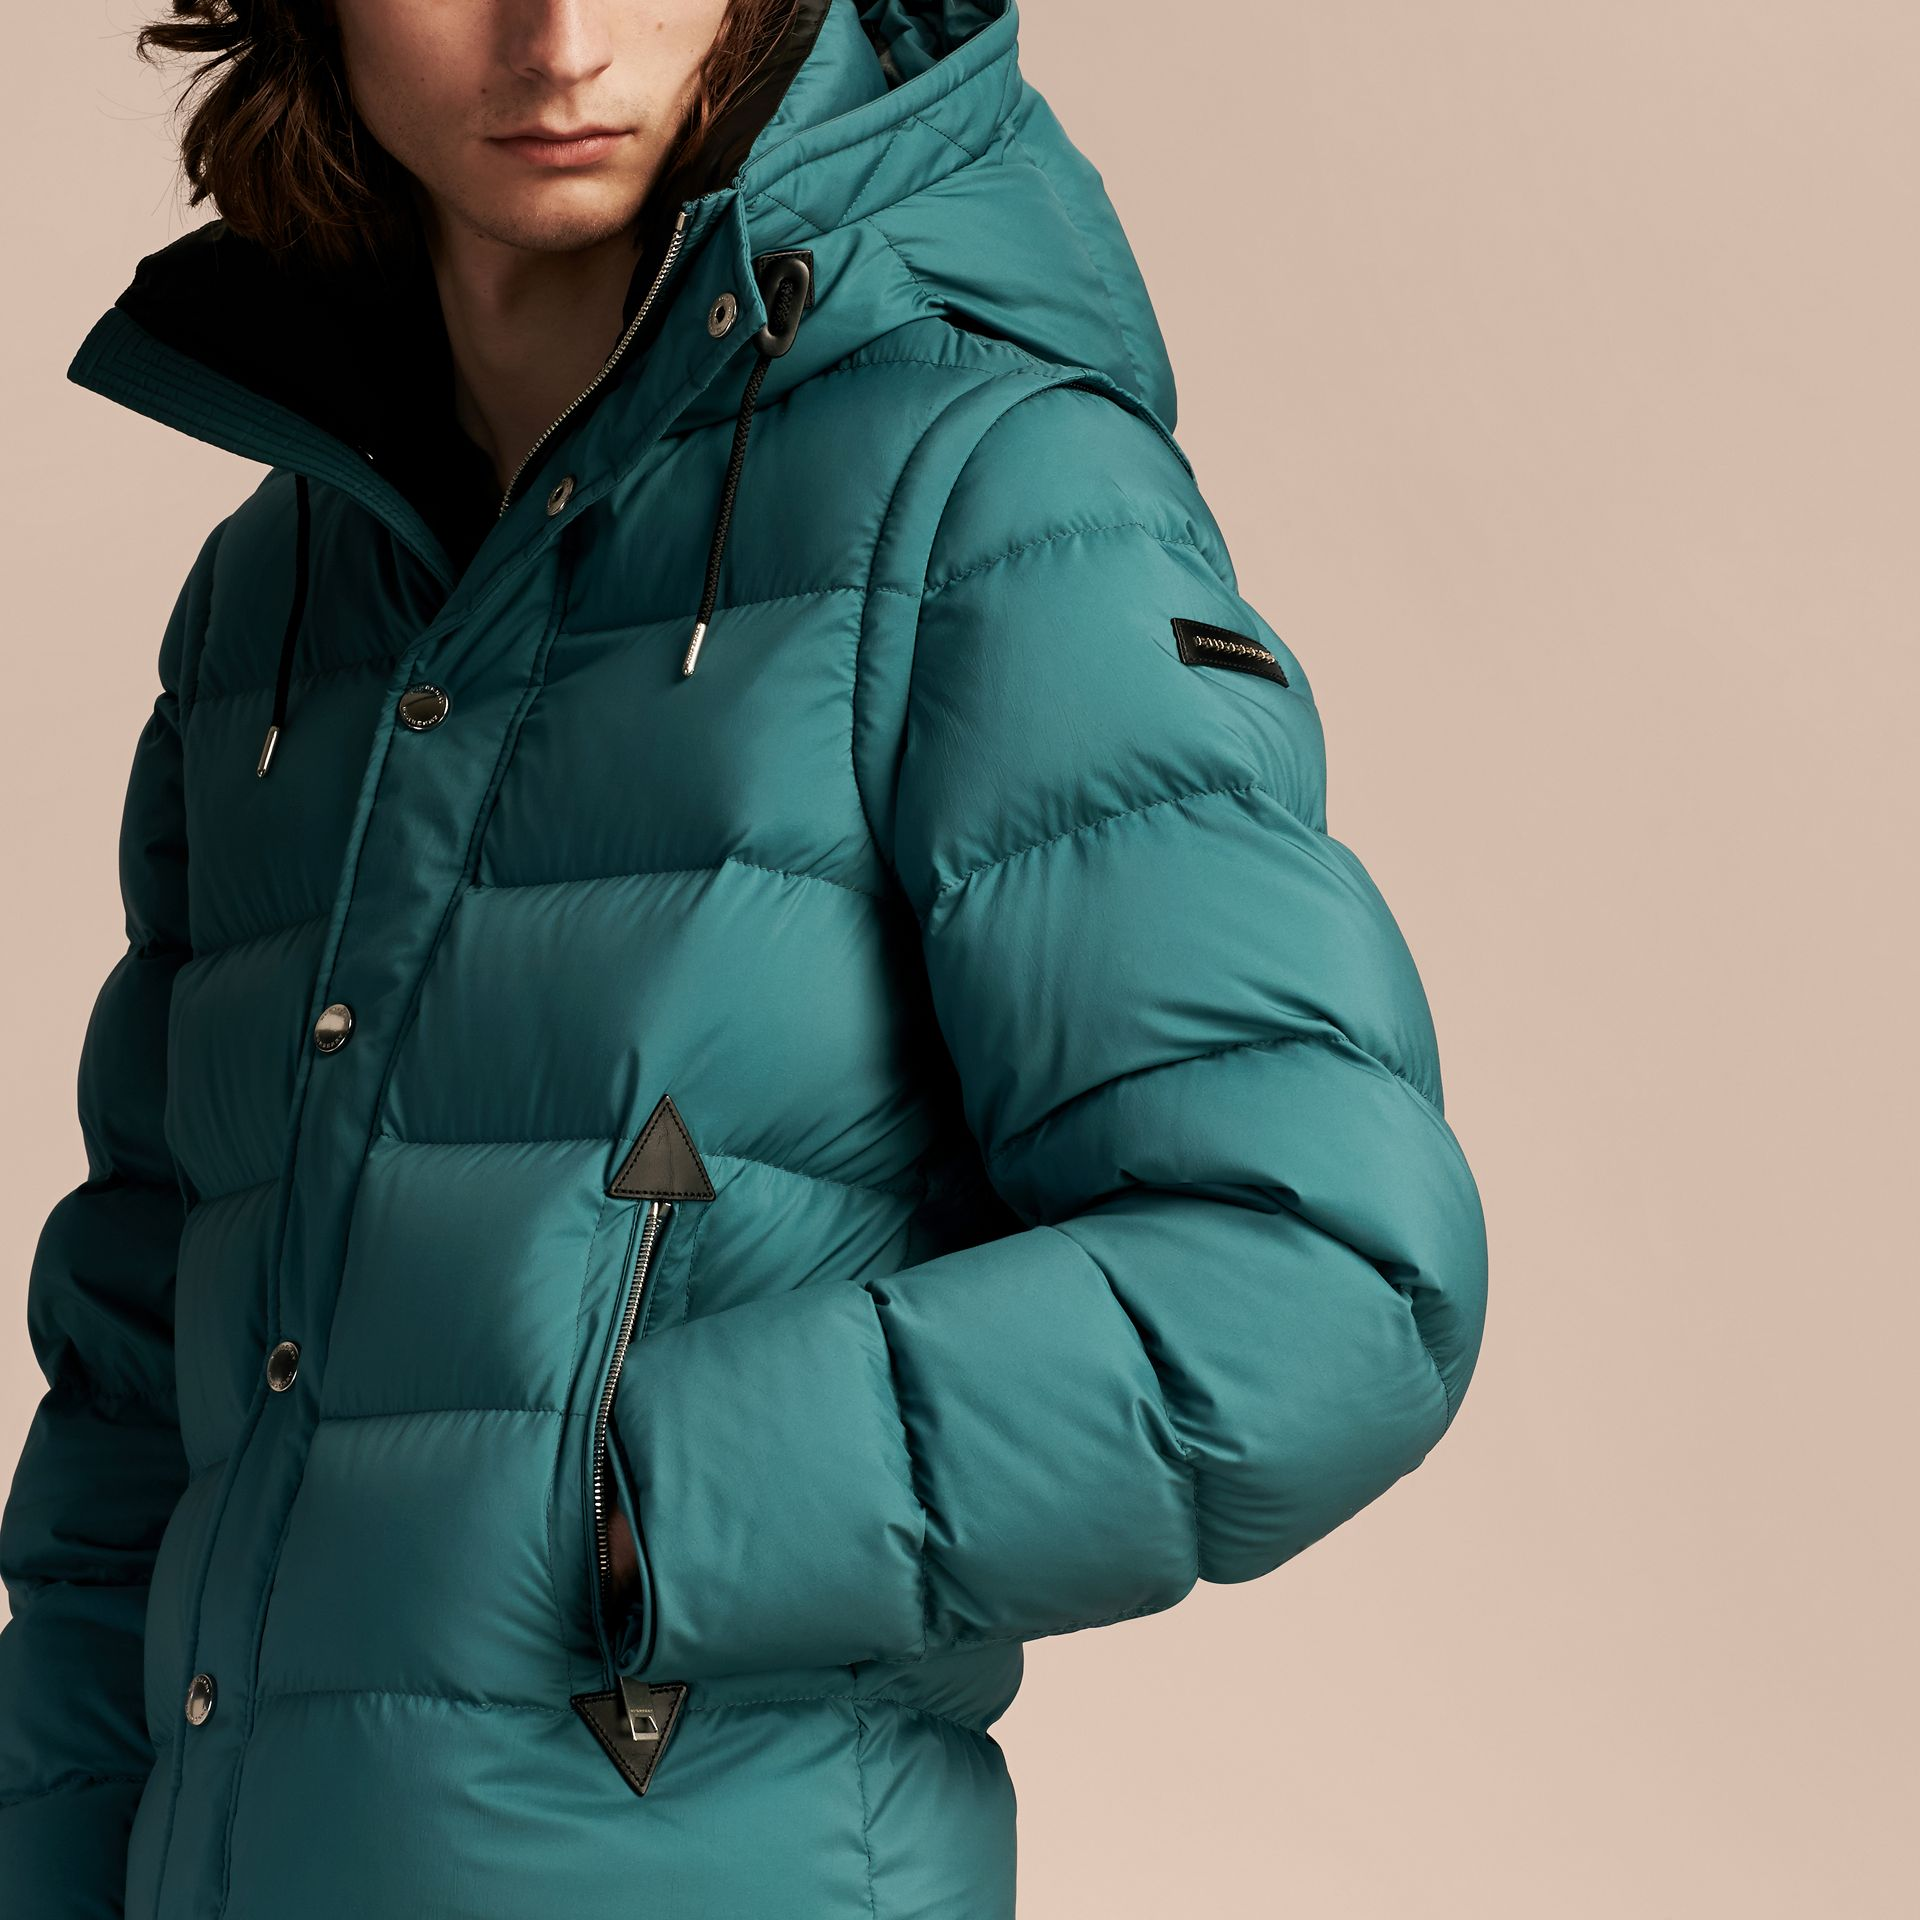 Dusty teal Down-filled Hooded Jacket with Detachable Sleeves Dusty Teal - gallery image 5